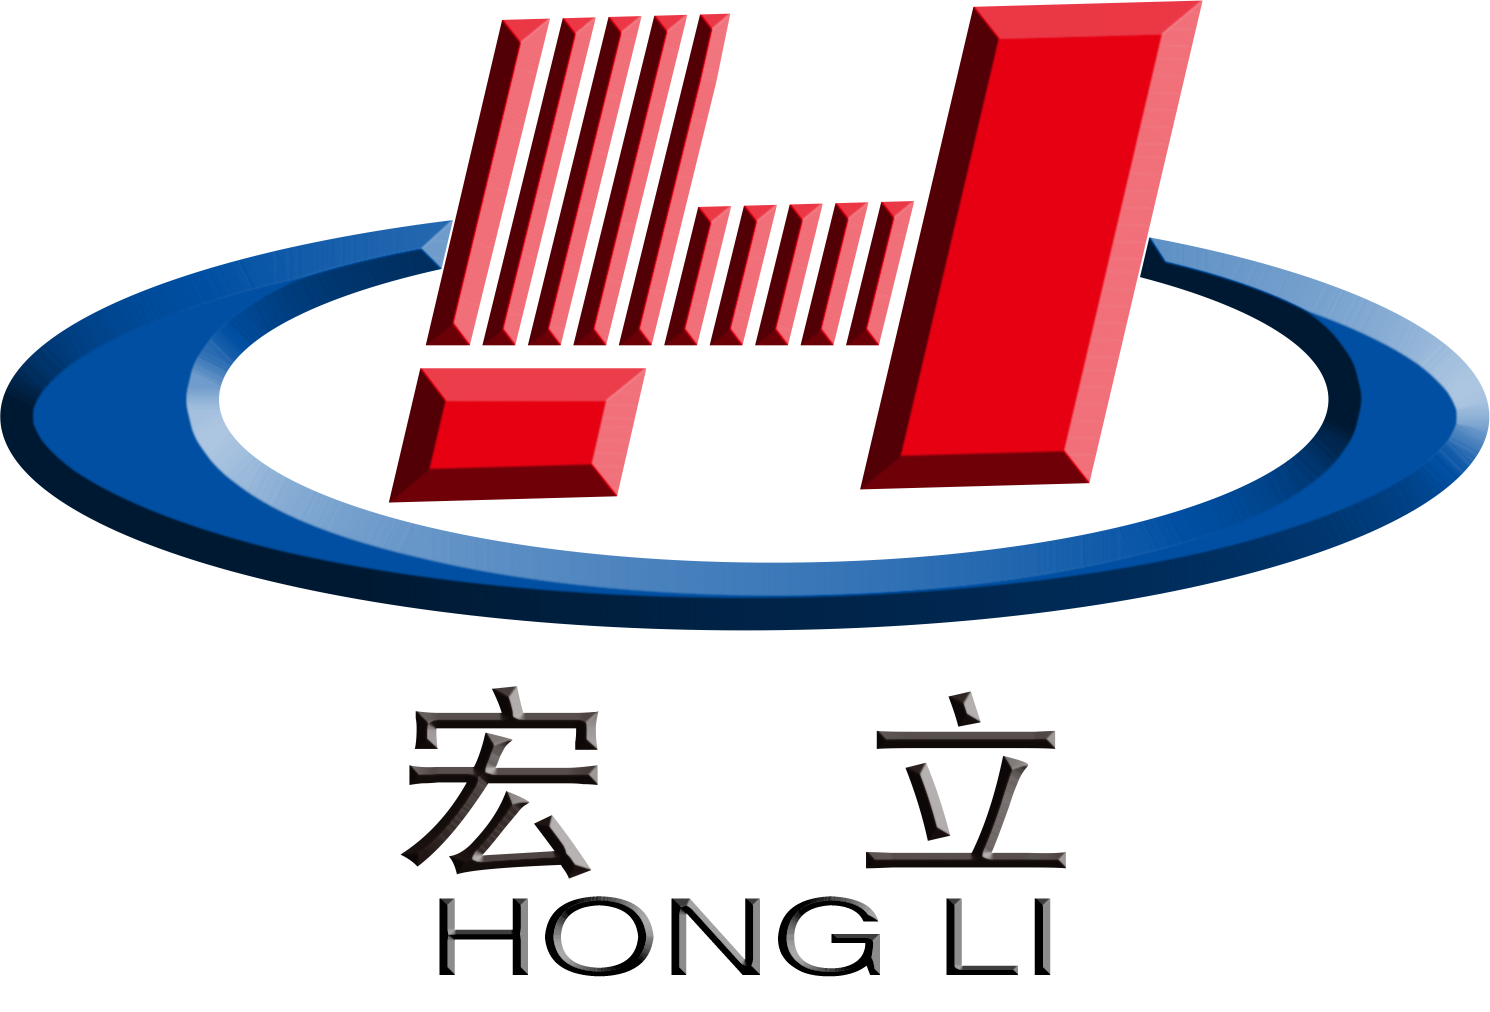 CHONGQING HONGLI MOTORCYCLE MANUFACTURE CO., LTD